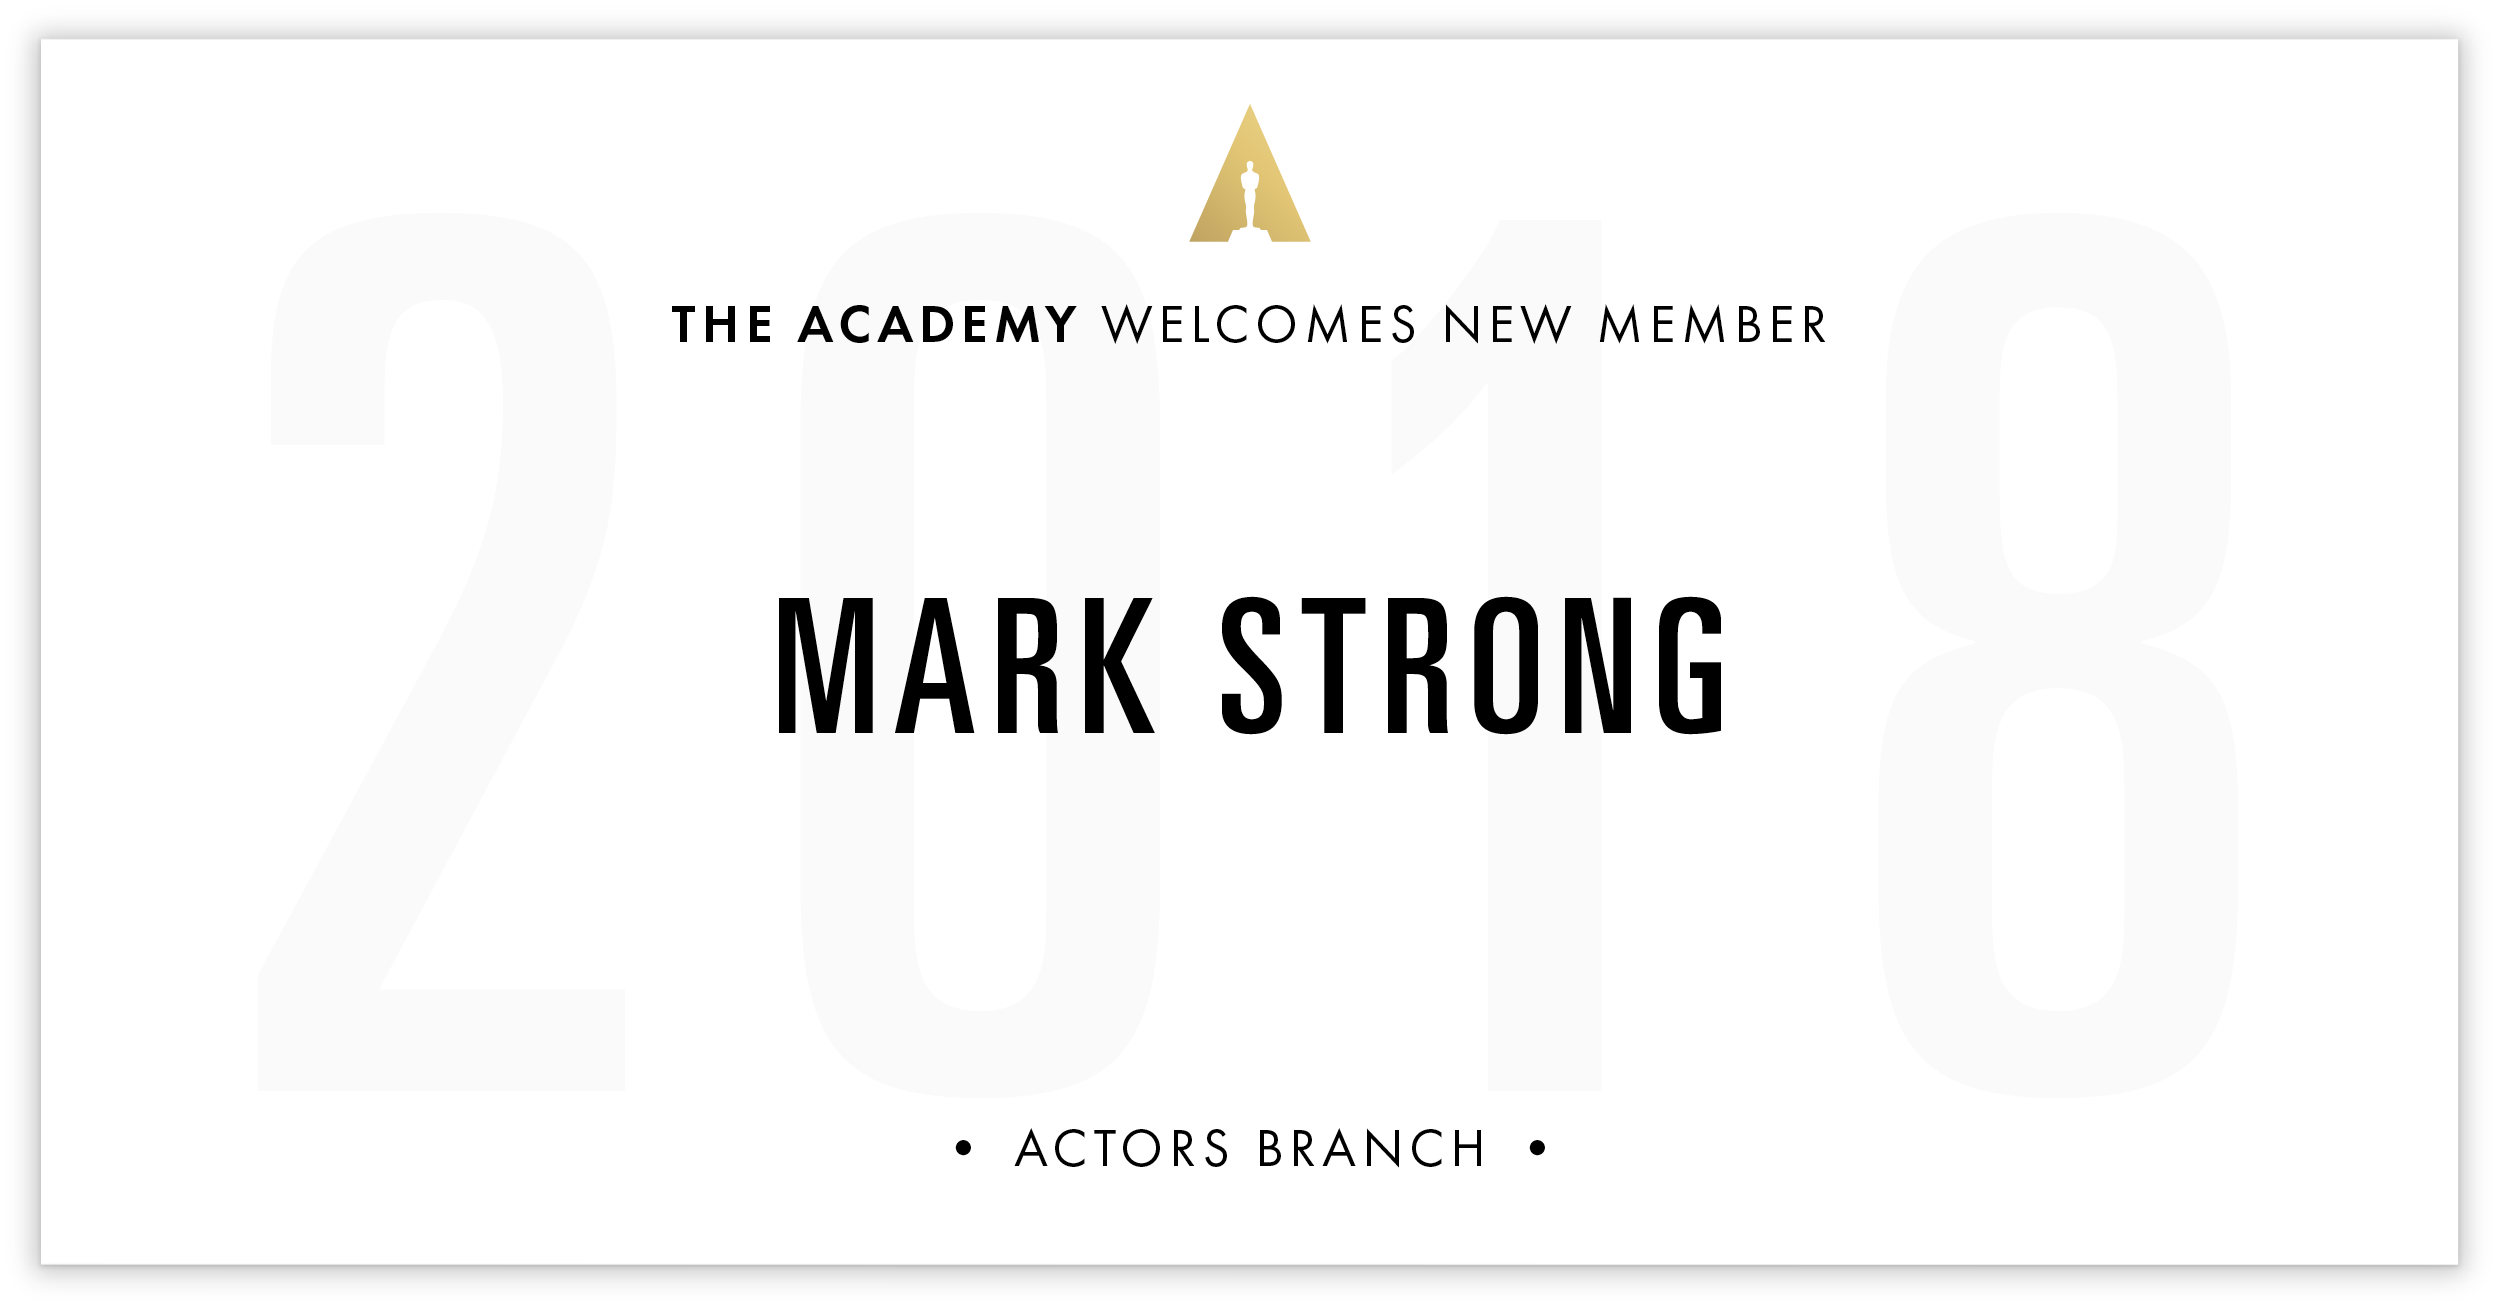 Mark Strong is invited!